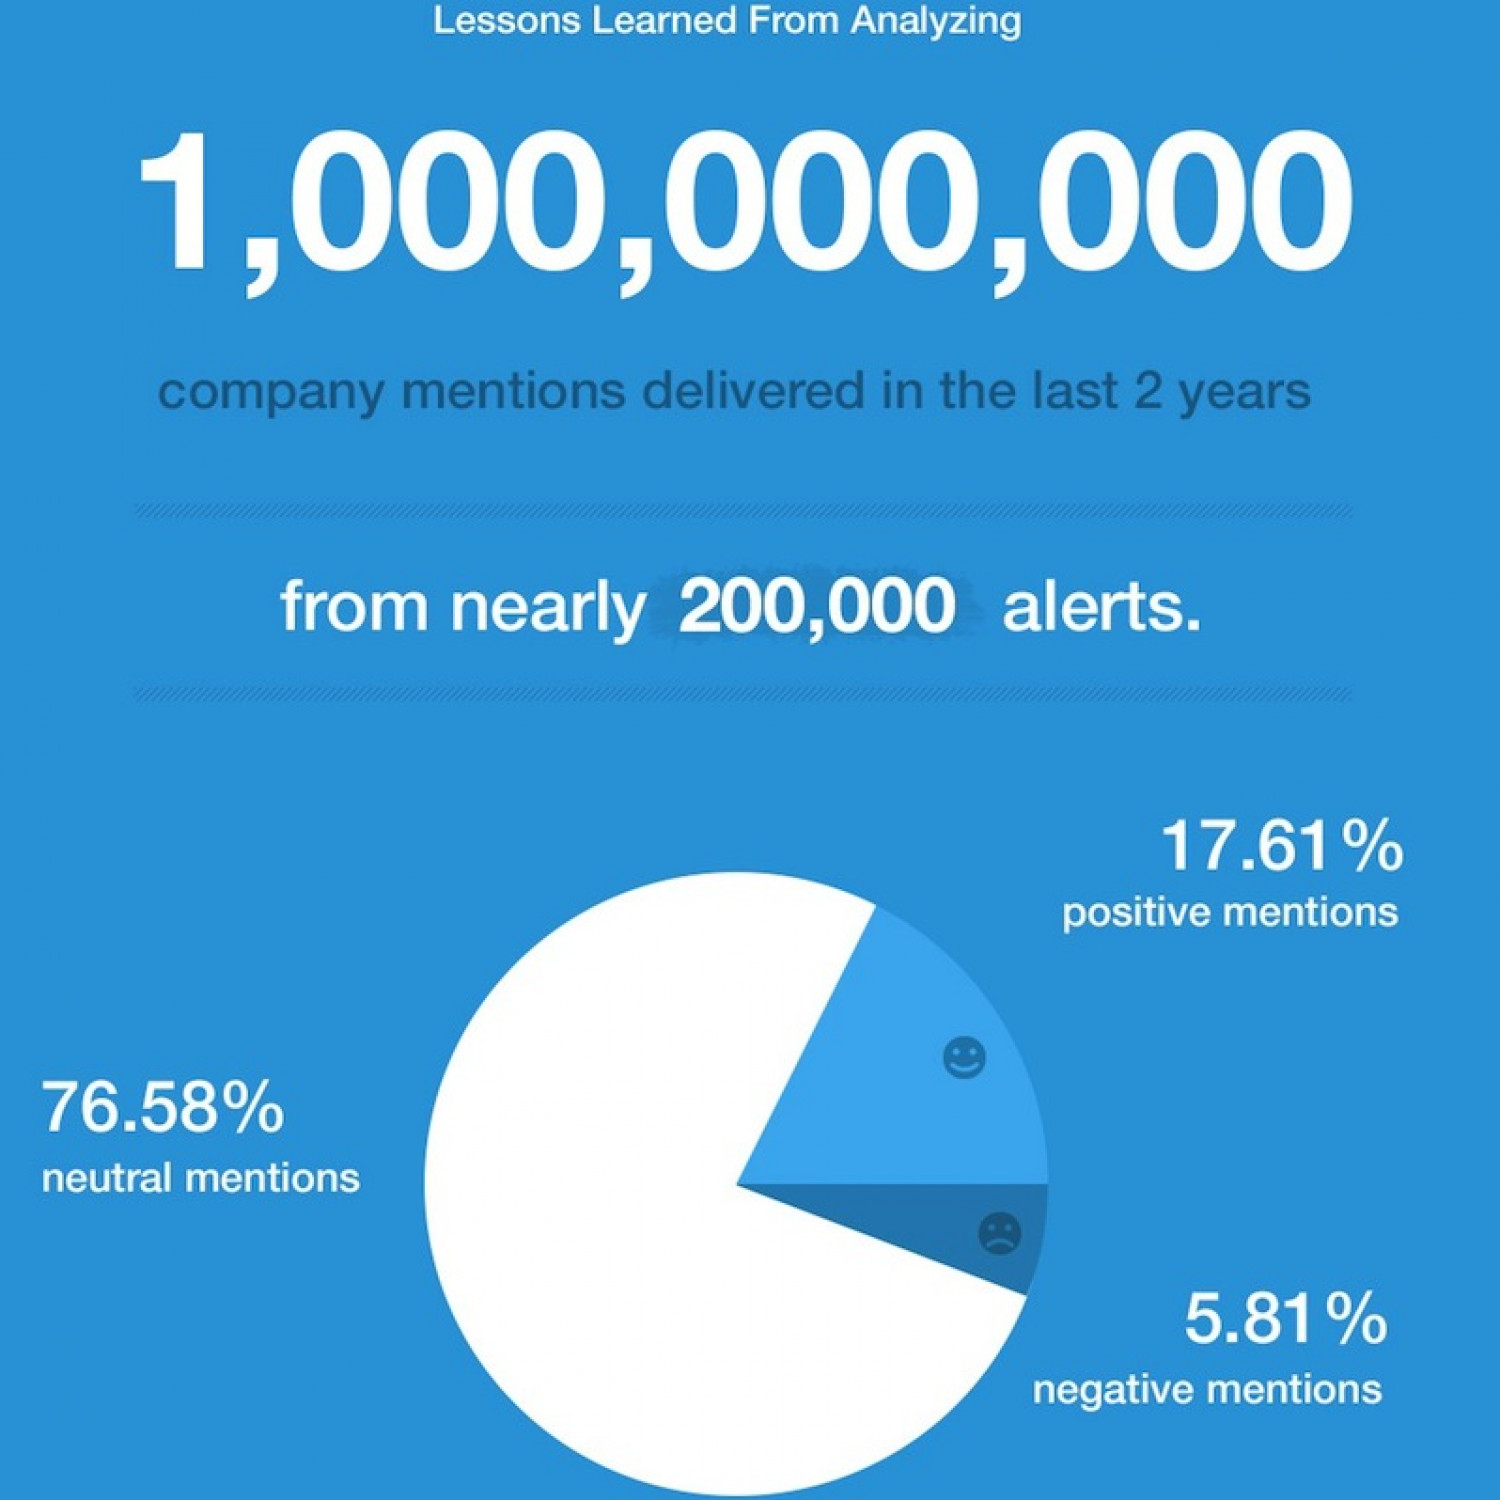 Lessons Learned From Analyzing 1,000,000,000 Company Mentions in the Last 2 Years Infographic